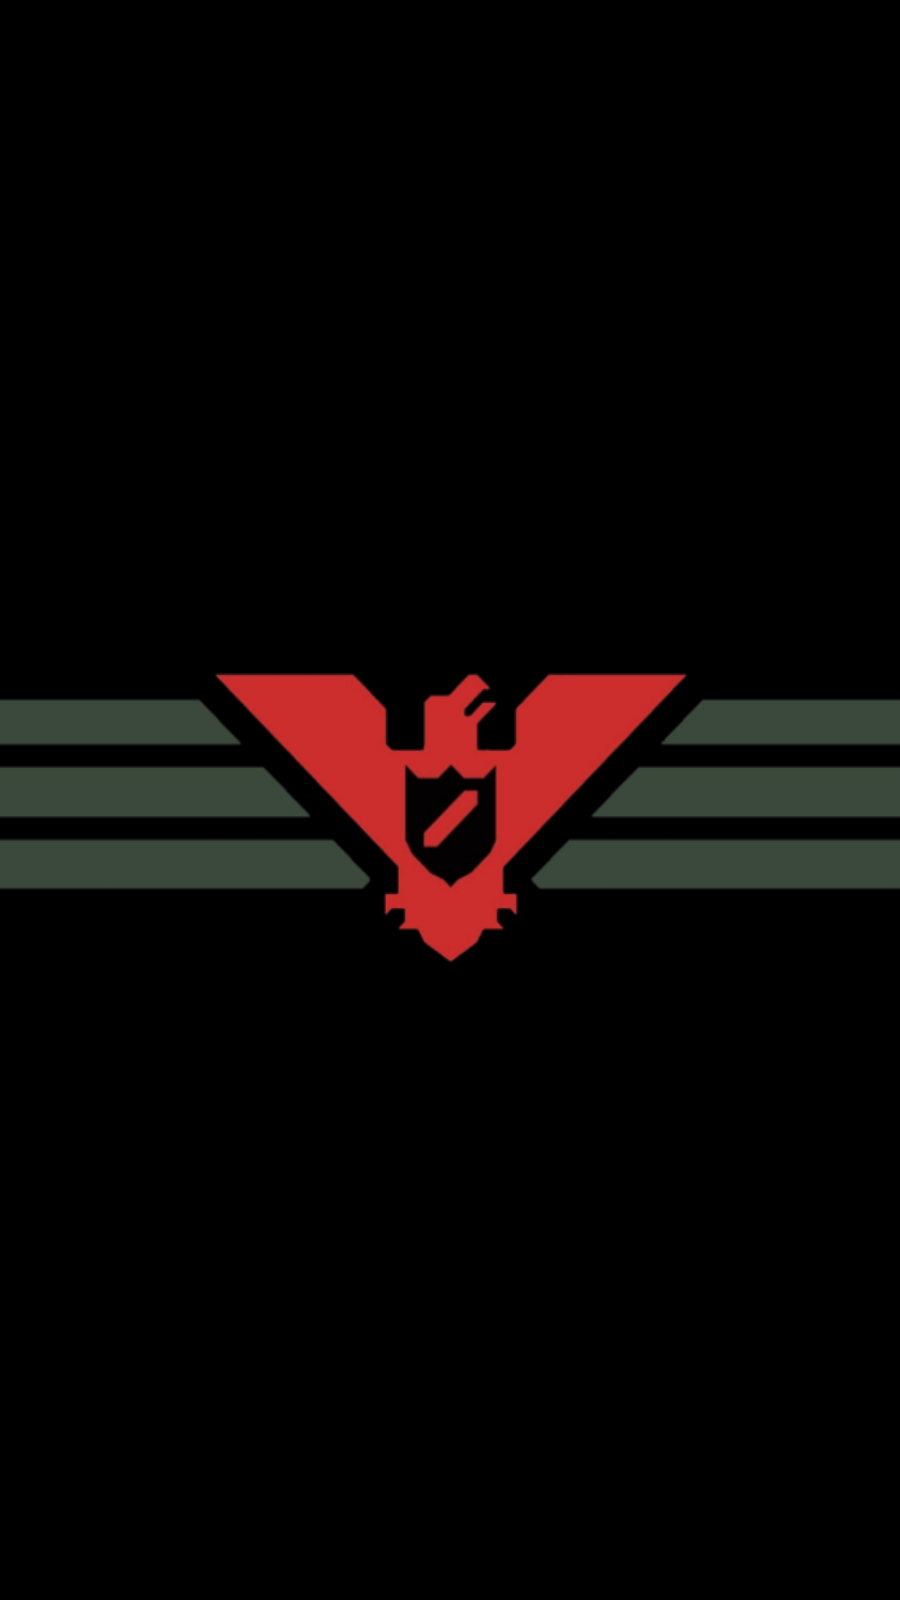 Papers please clipart png freeuse download Here\'s the wallpaper, devoid of the Clipart, and with the ... png freeuse download